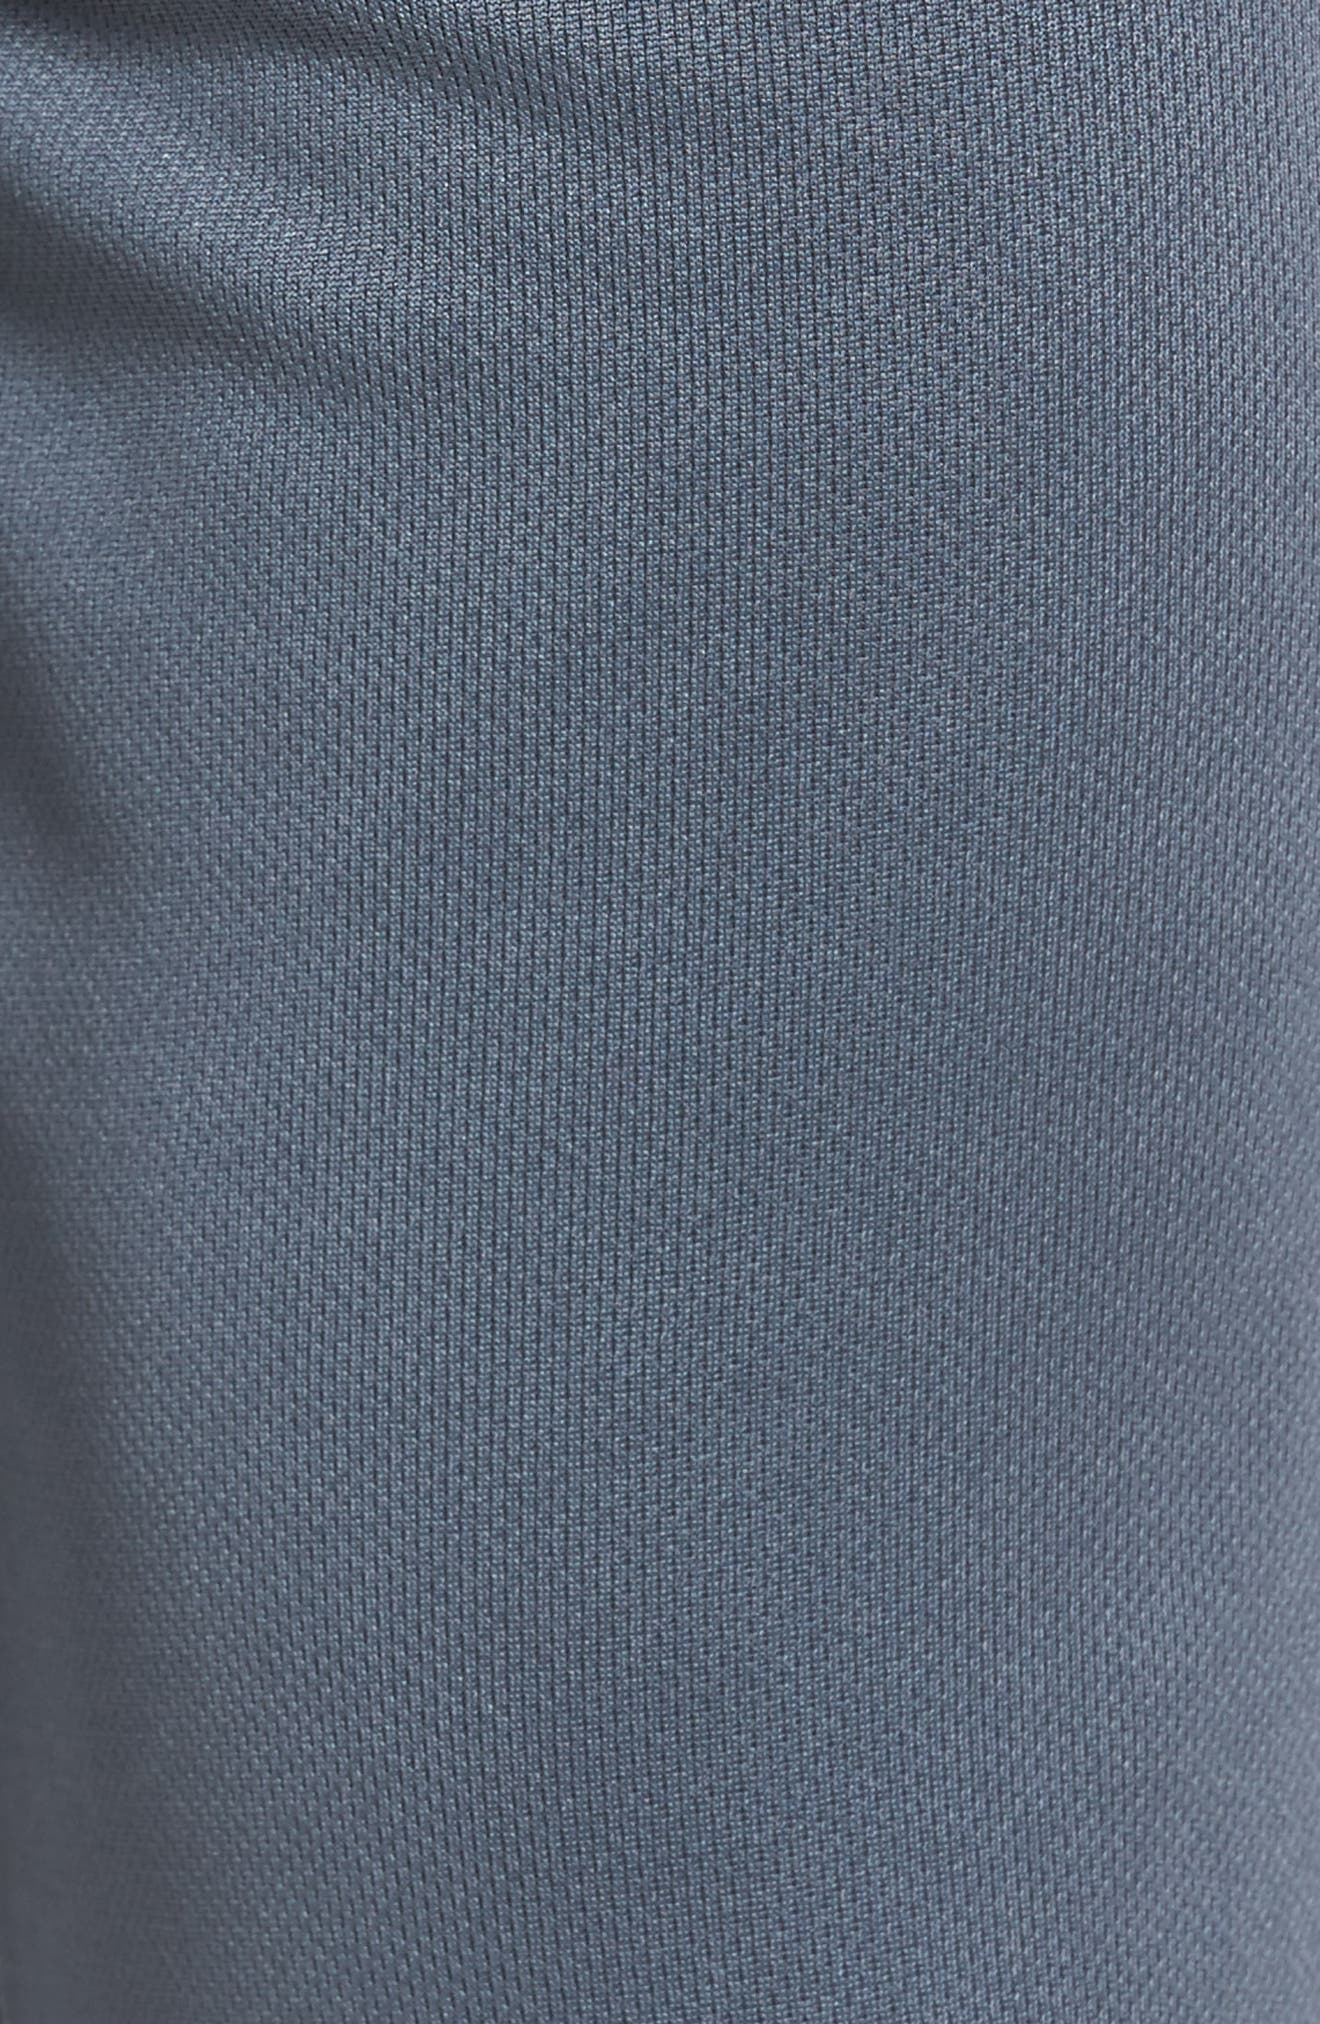 Work Out Lounge Pants,                             Alternate thumbnail 14, color,